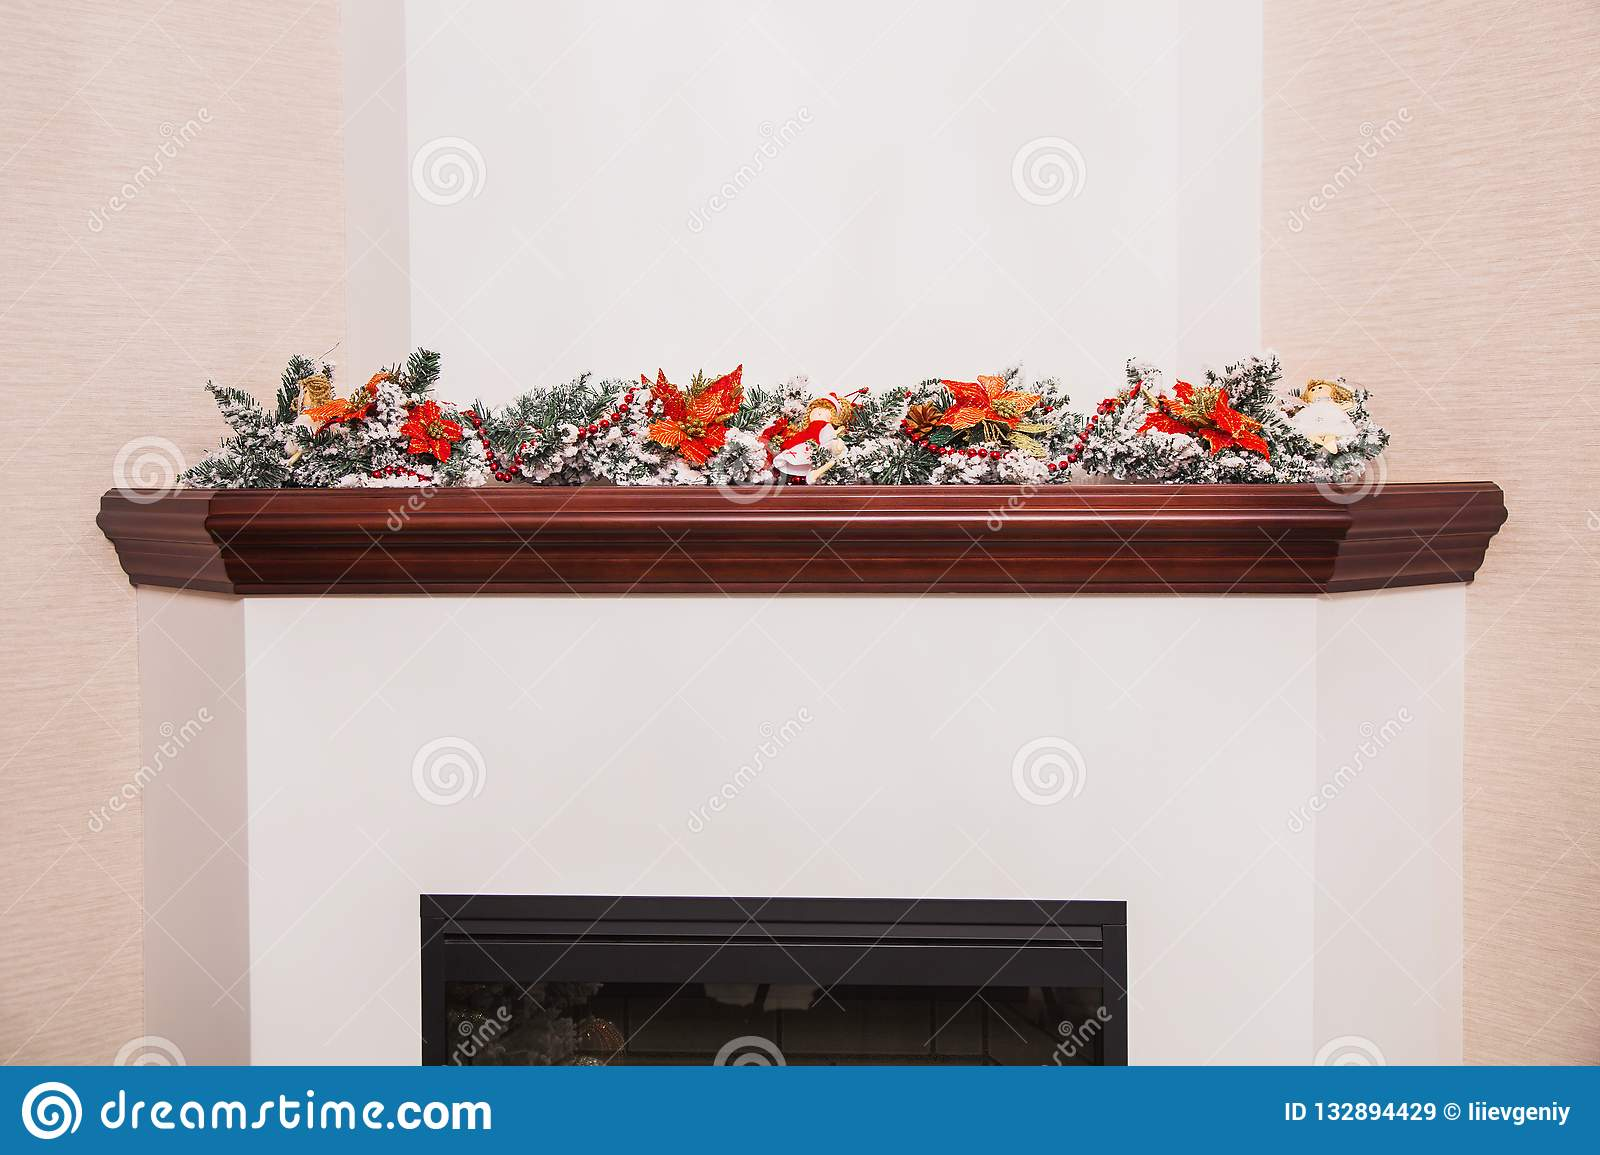 Christmas decor in the house. Winter tree with smow. New Year decorations on fireplace. Branch of spruce with snow. Christmas post